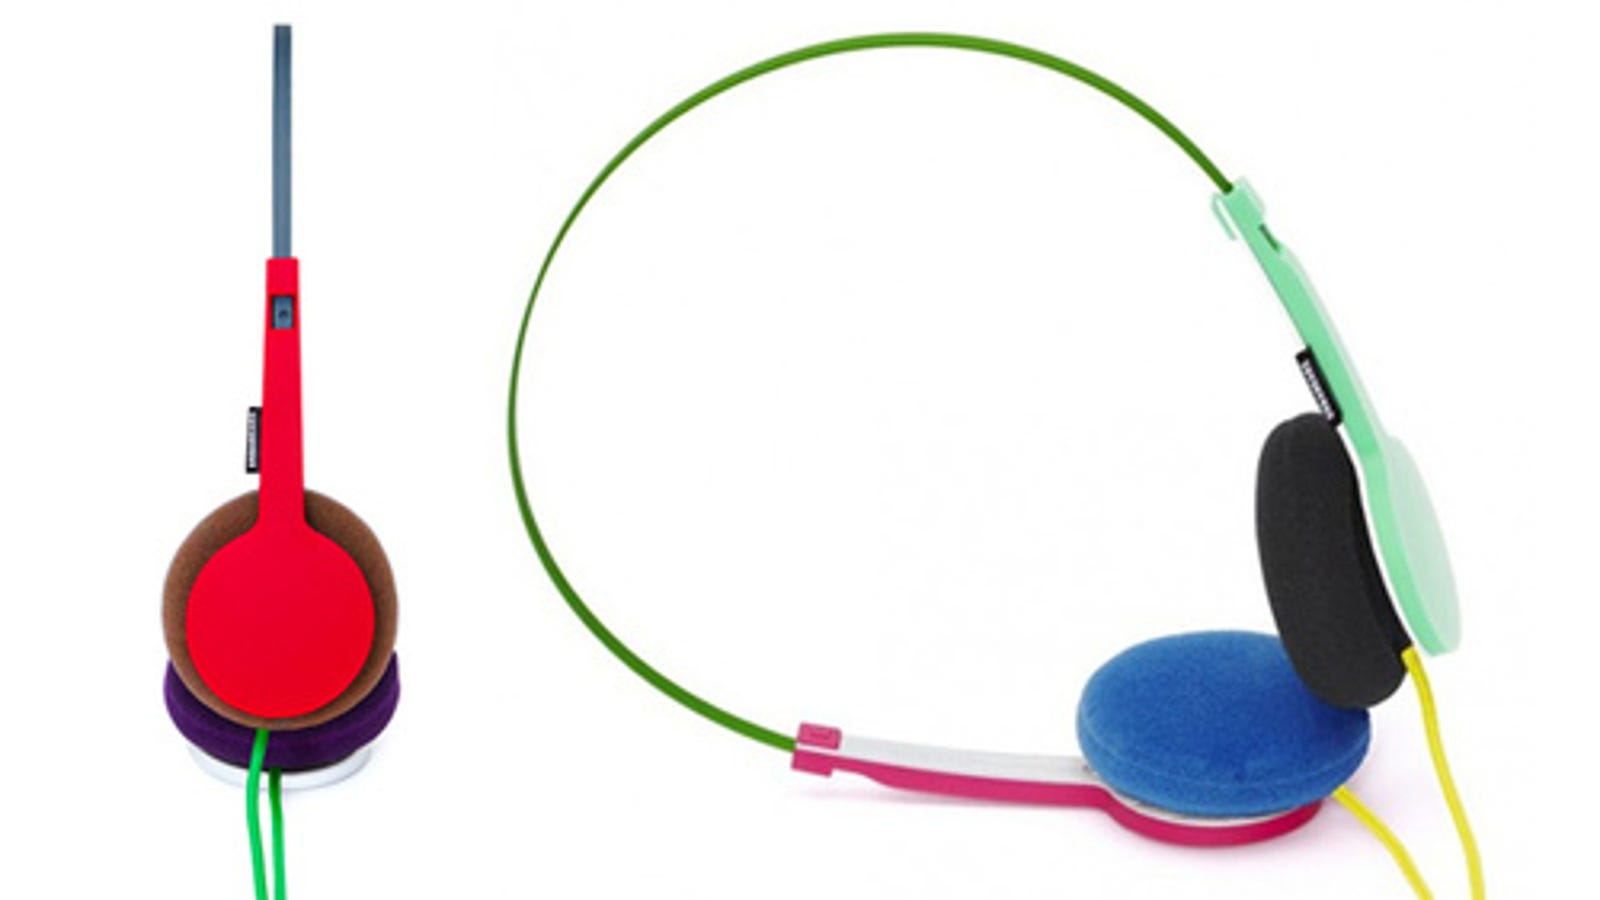 earbuds accessories clip - The '80s Headphones Lucky-Dip